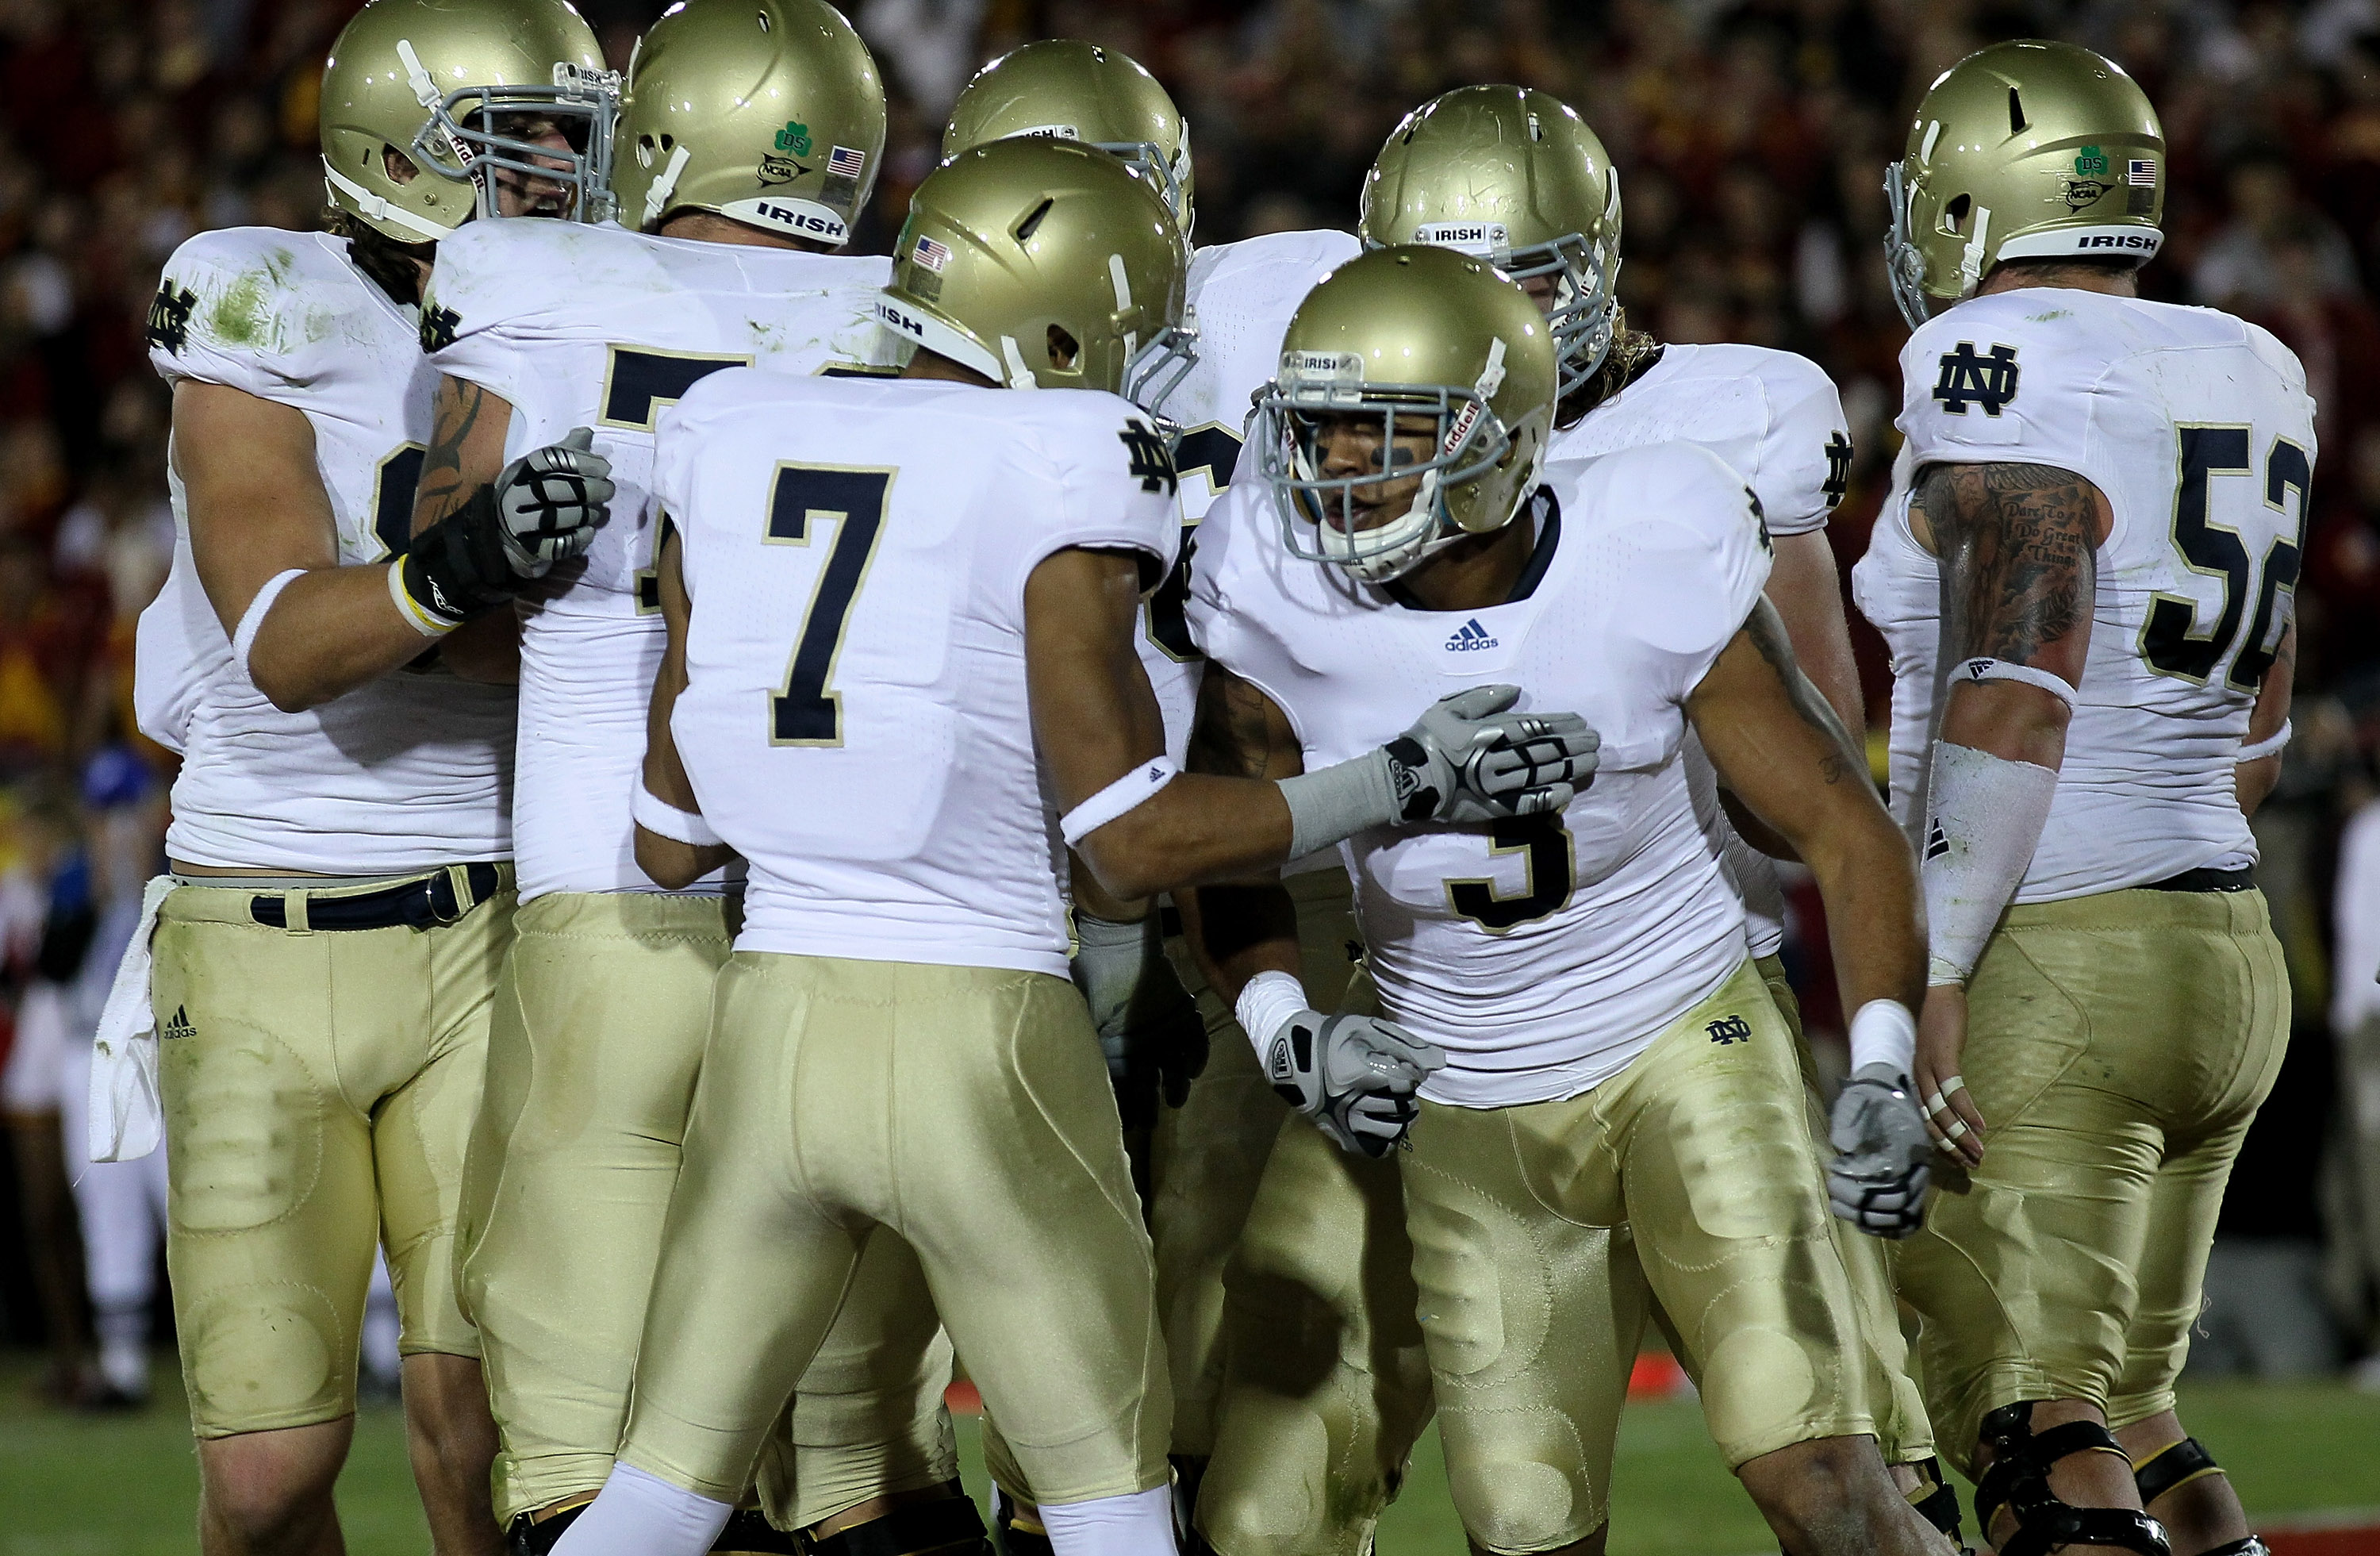 LOS ANGELES - NOVEMBER 27:  Wide receiver Michael Floyd #3 of the Notre Dame Fighting Irish celebrates with wide receiver T.J. Jones #7 after making a one yard touchdown catch against the USC Trojans at the Los Angeles Memorial Coliseum on November 27, 20